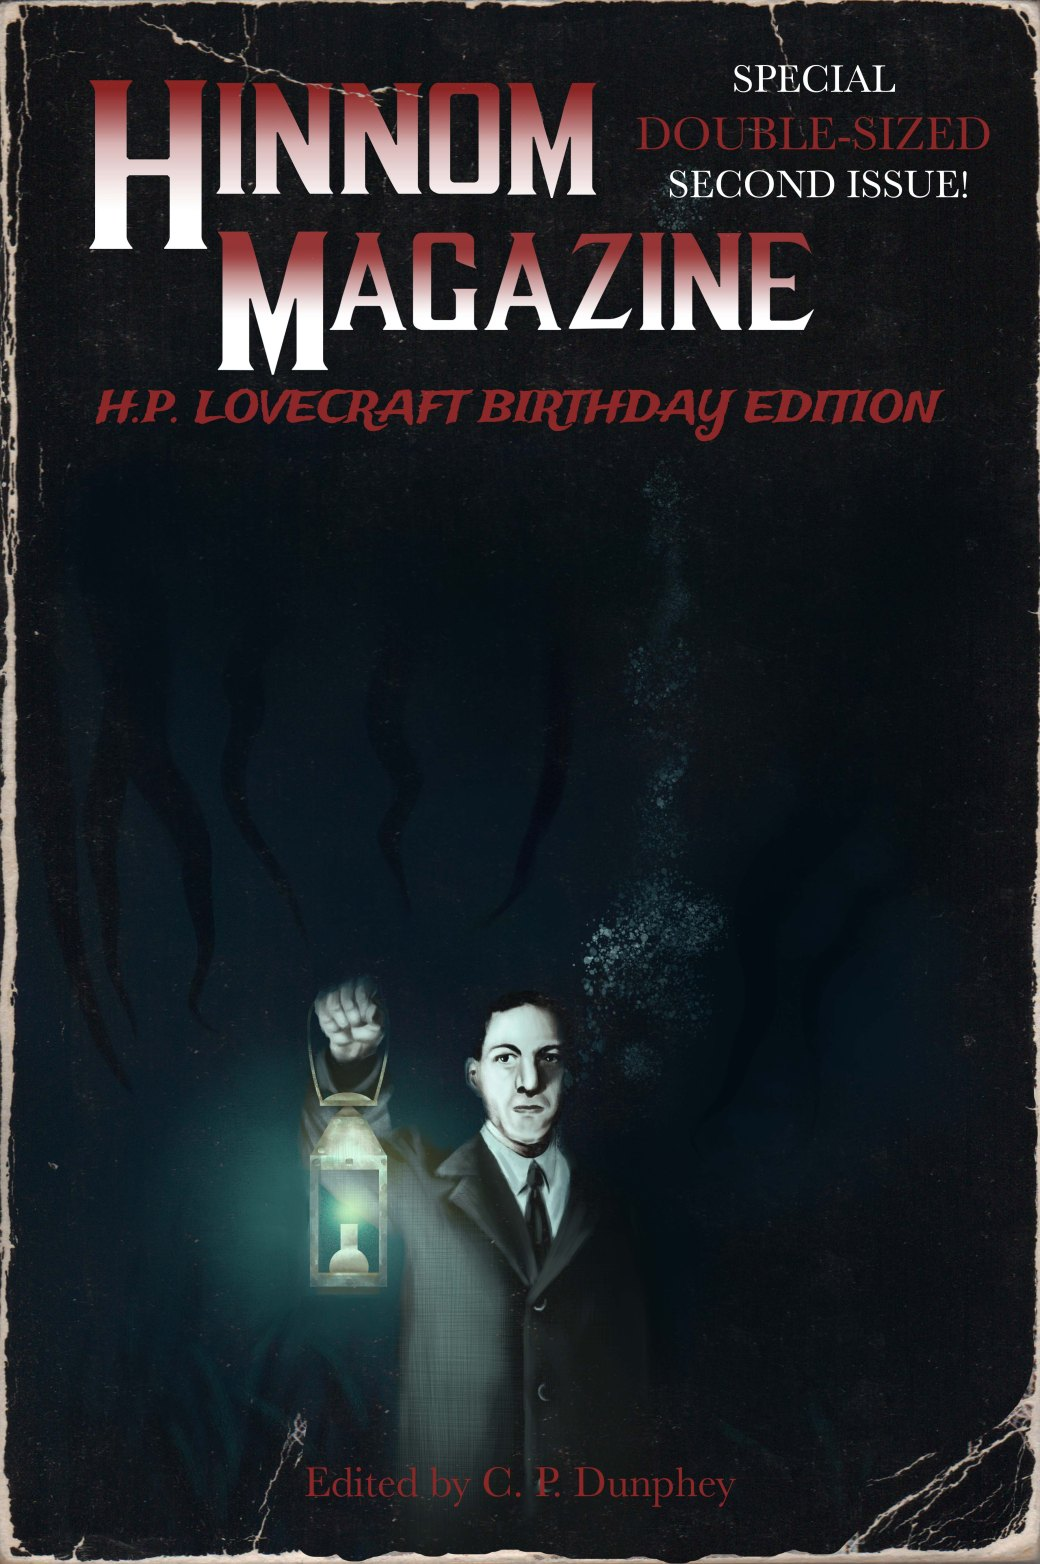 HP Lovecraft front